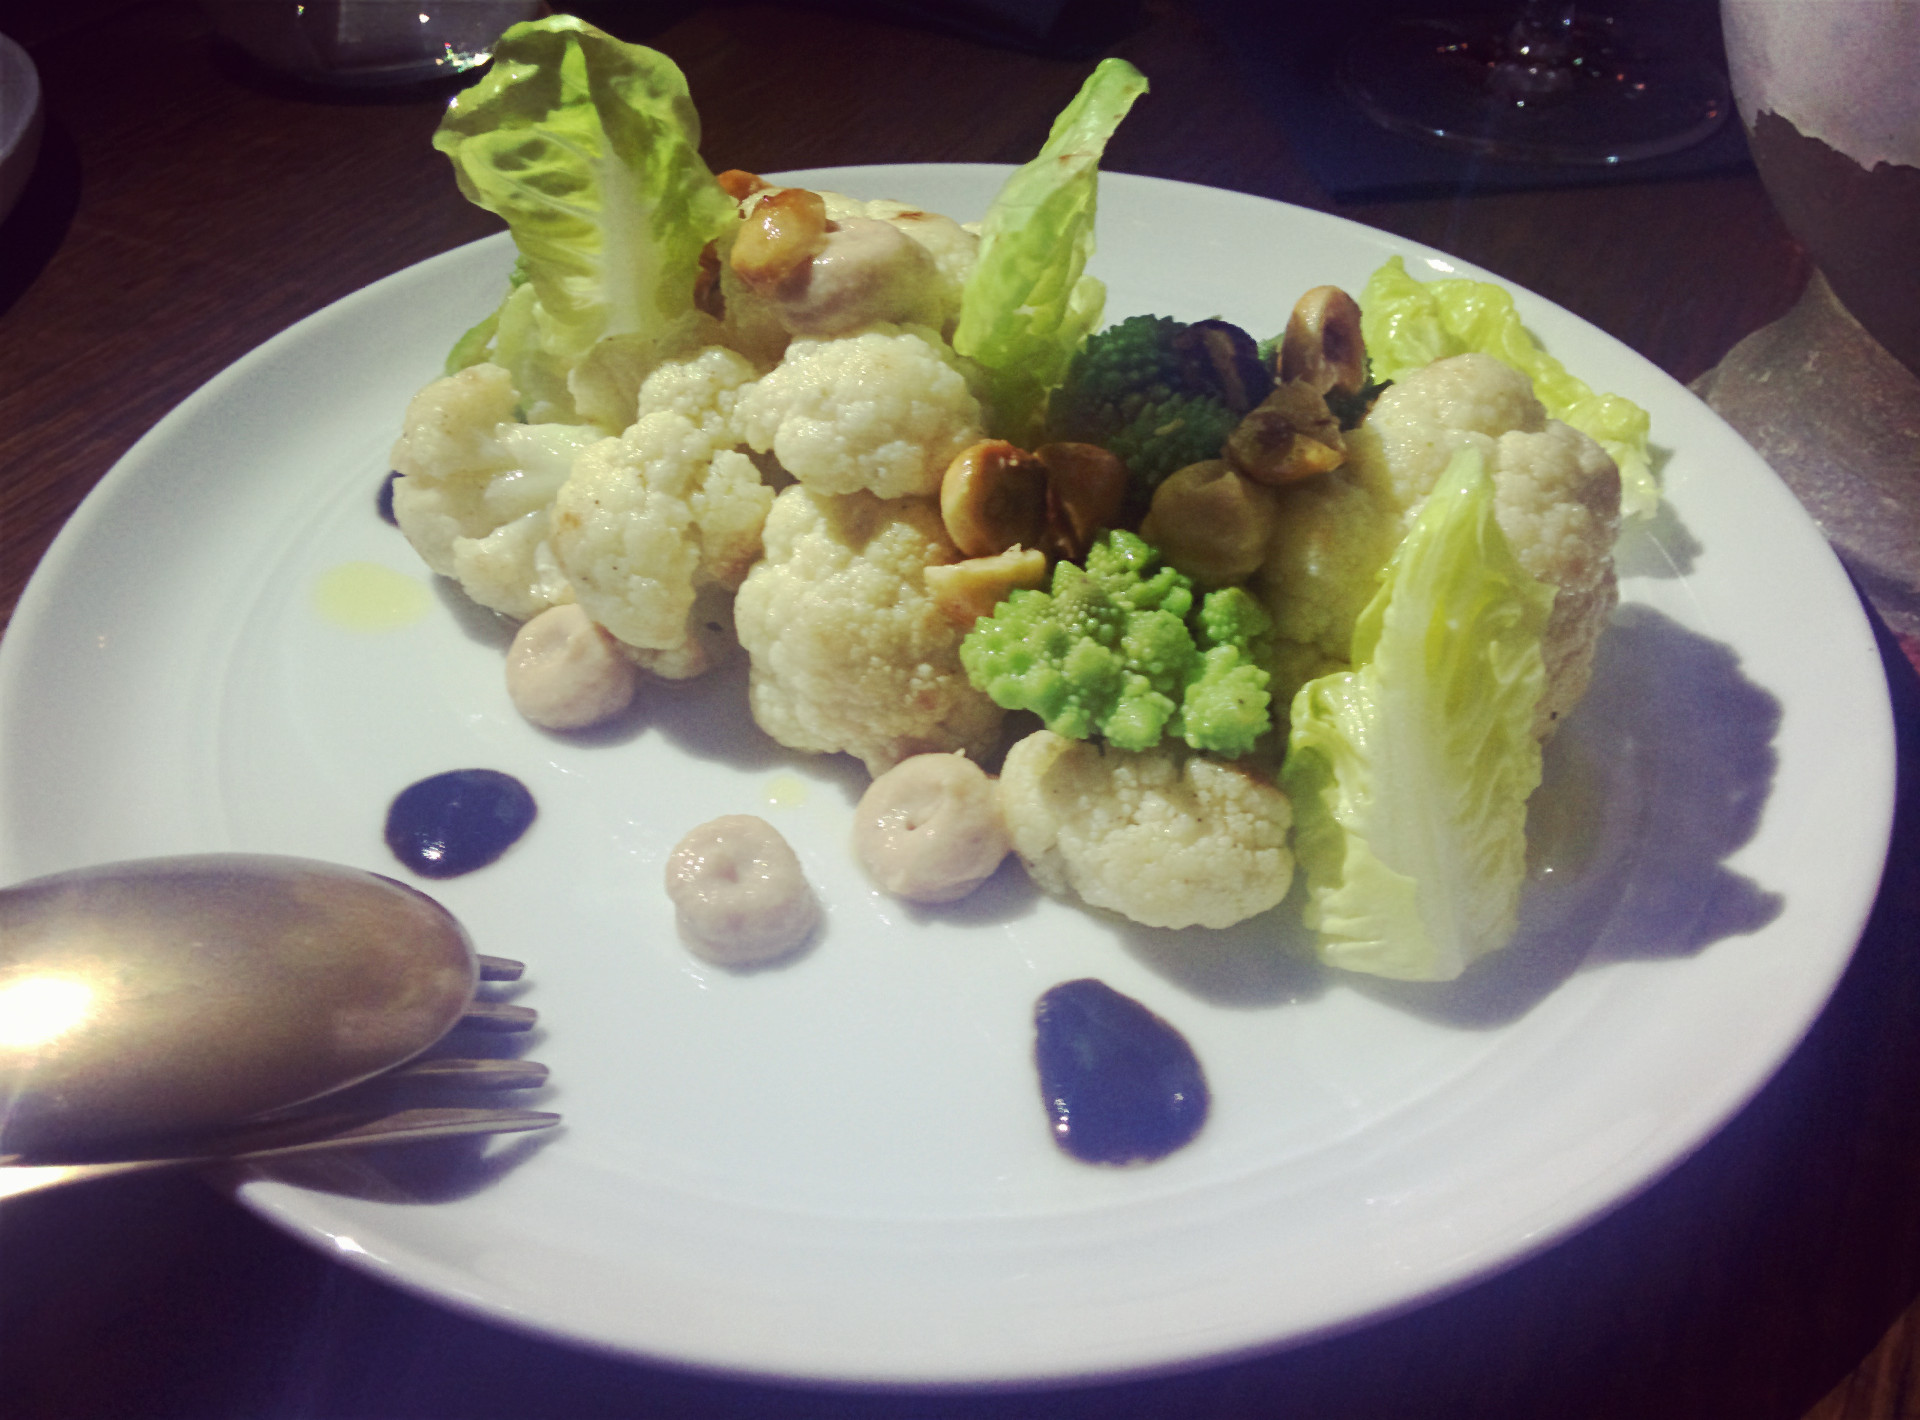 Cauliflower and hazelnut salad